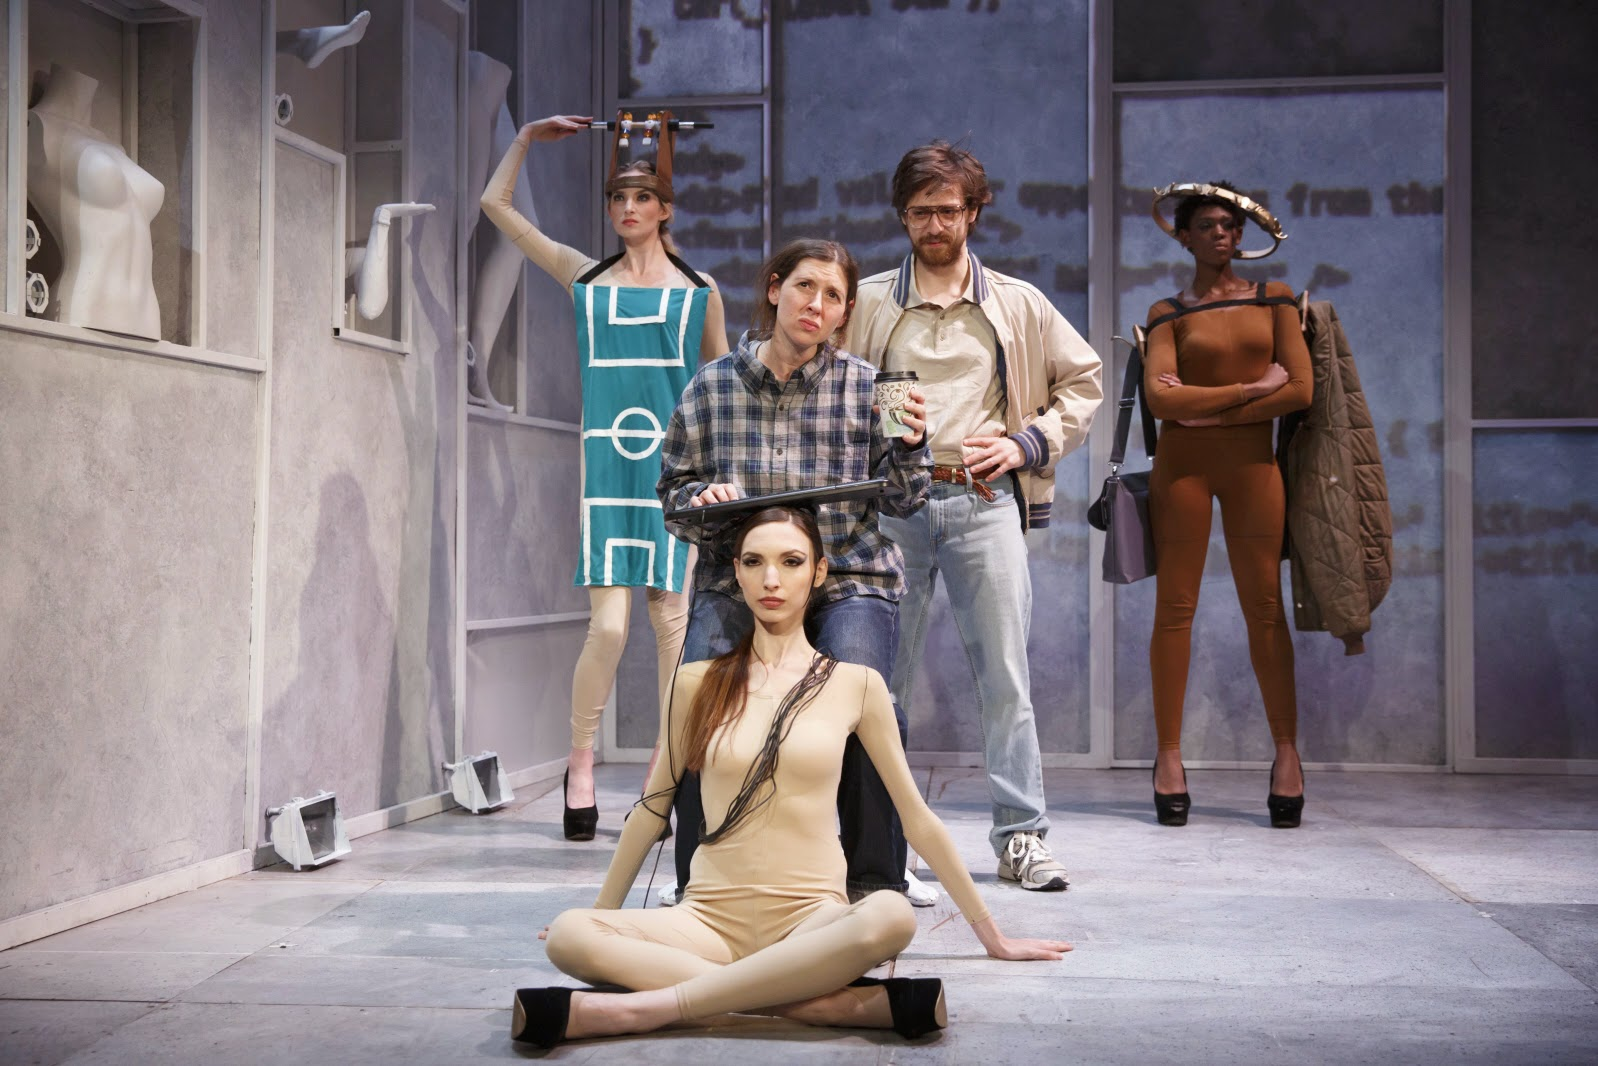 Allegra Rose Edwards theatre's leiter side: 155 (2014-2015): review of everything